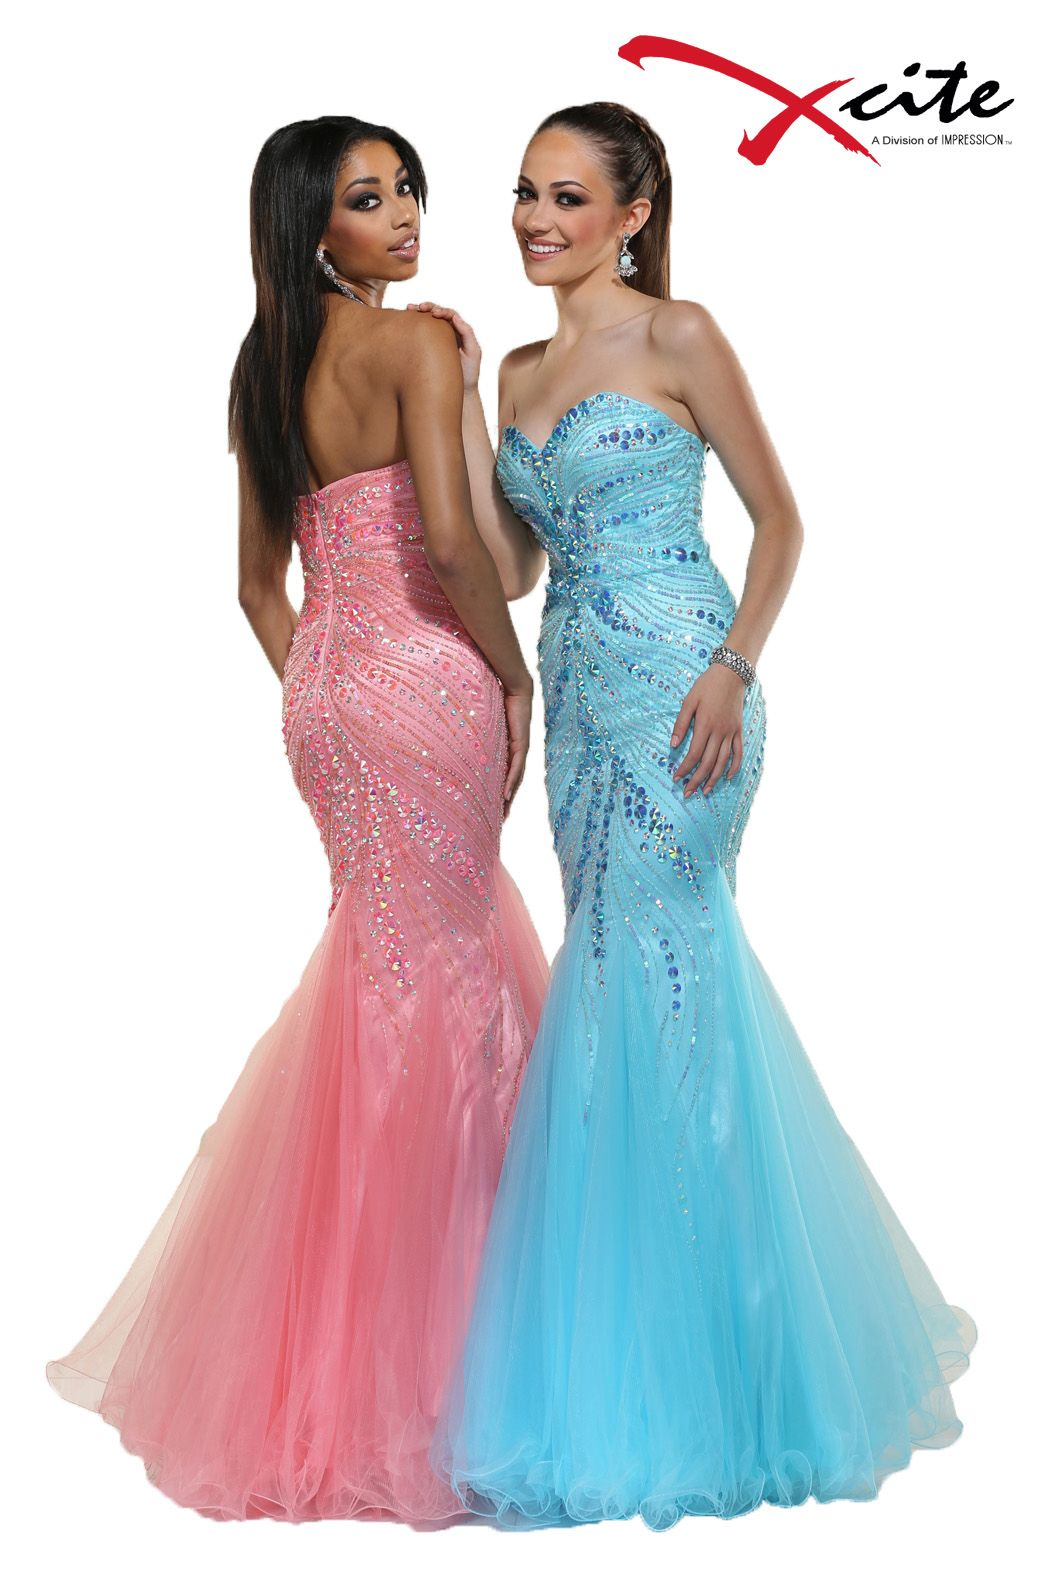 30595 in cotton candy #pink and #blue with a gorgeous #mermaid tail ...